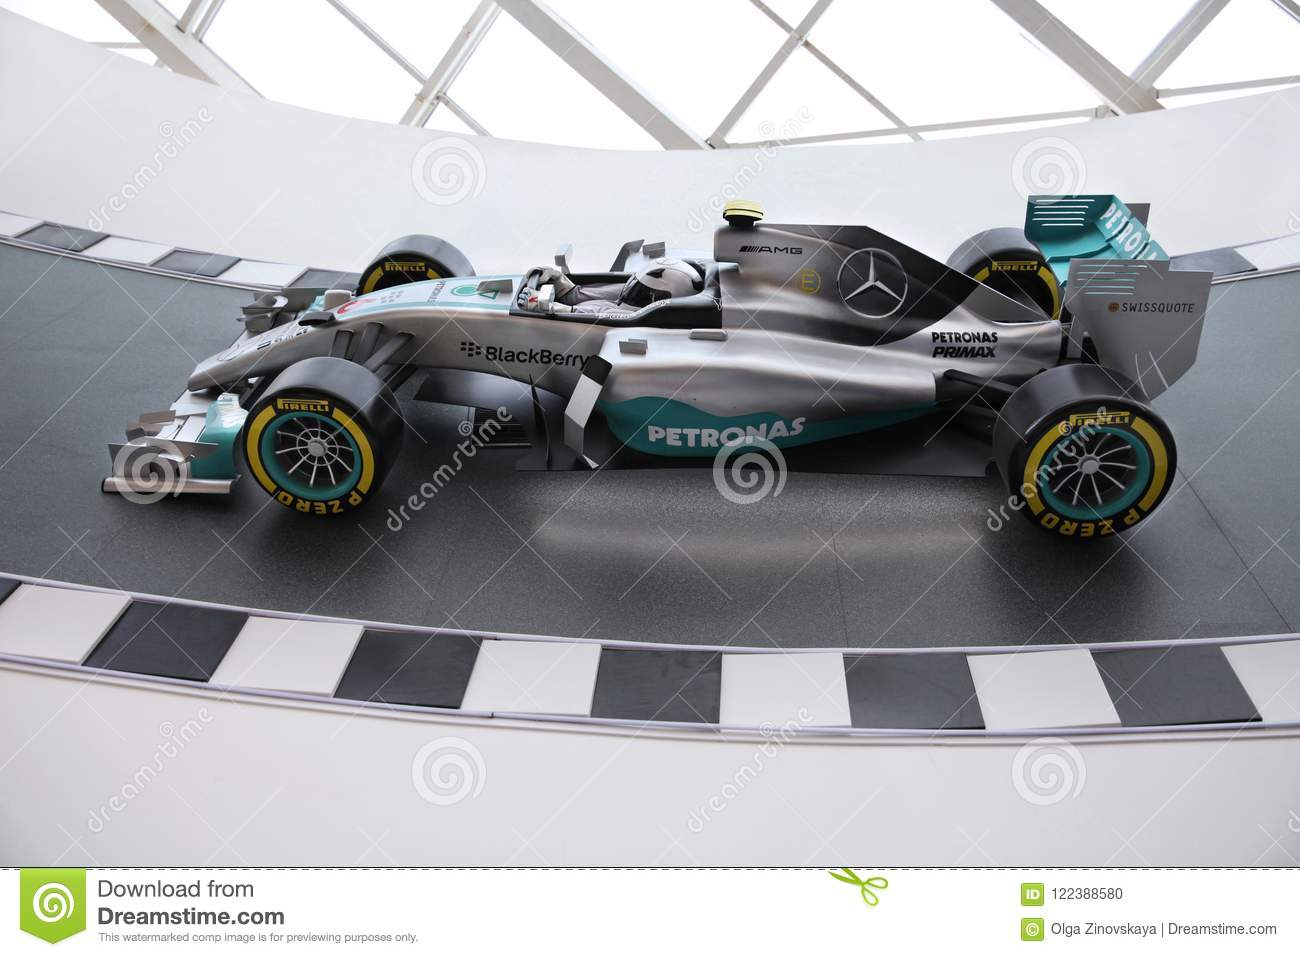 Motorsportrennwagen Mercedess AMG Petronas in Mercedes Me-conce